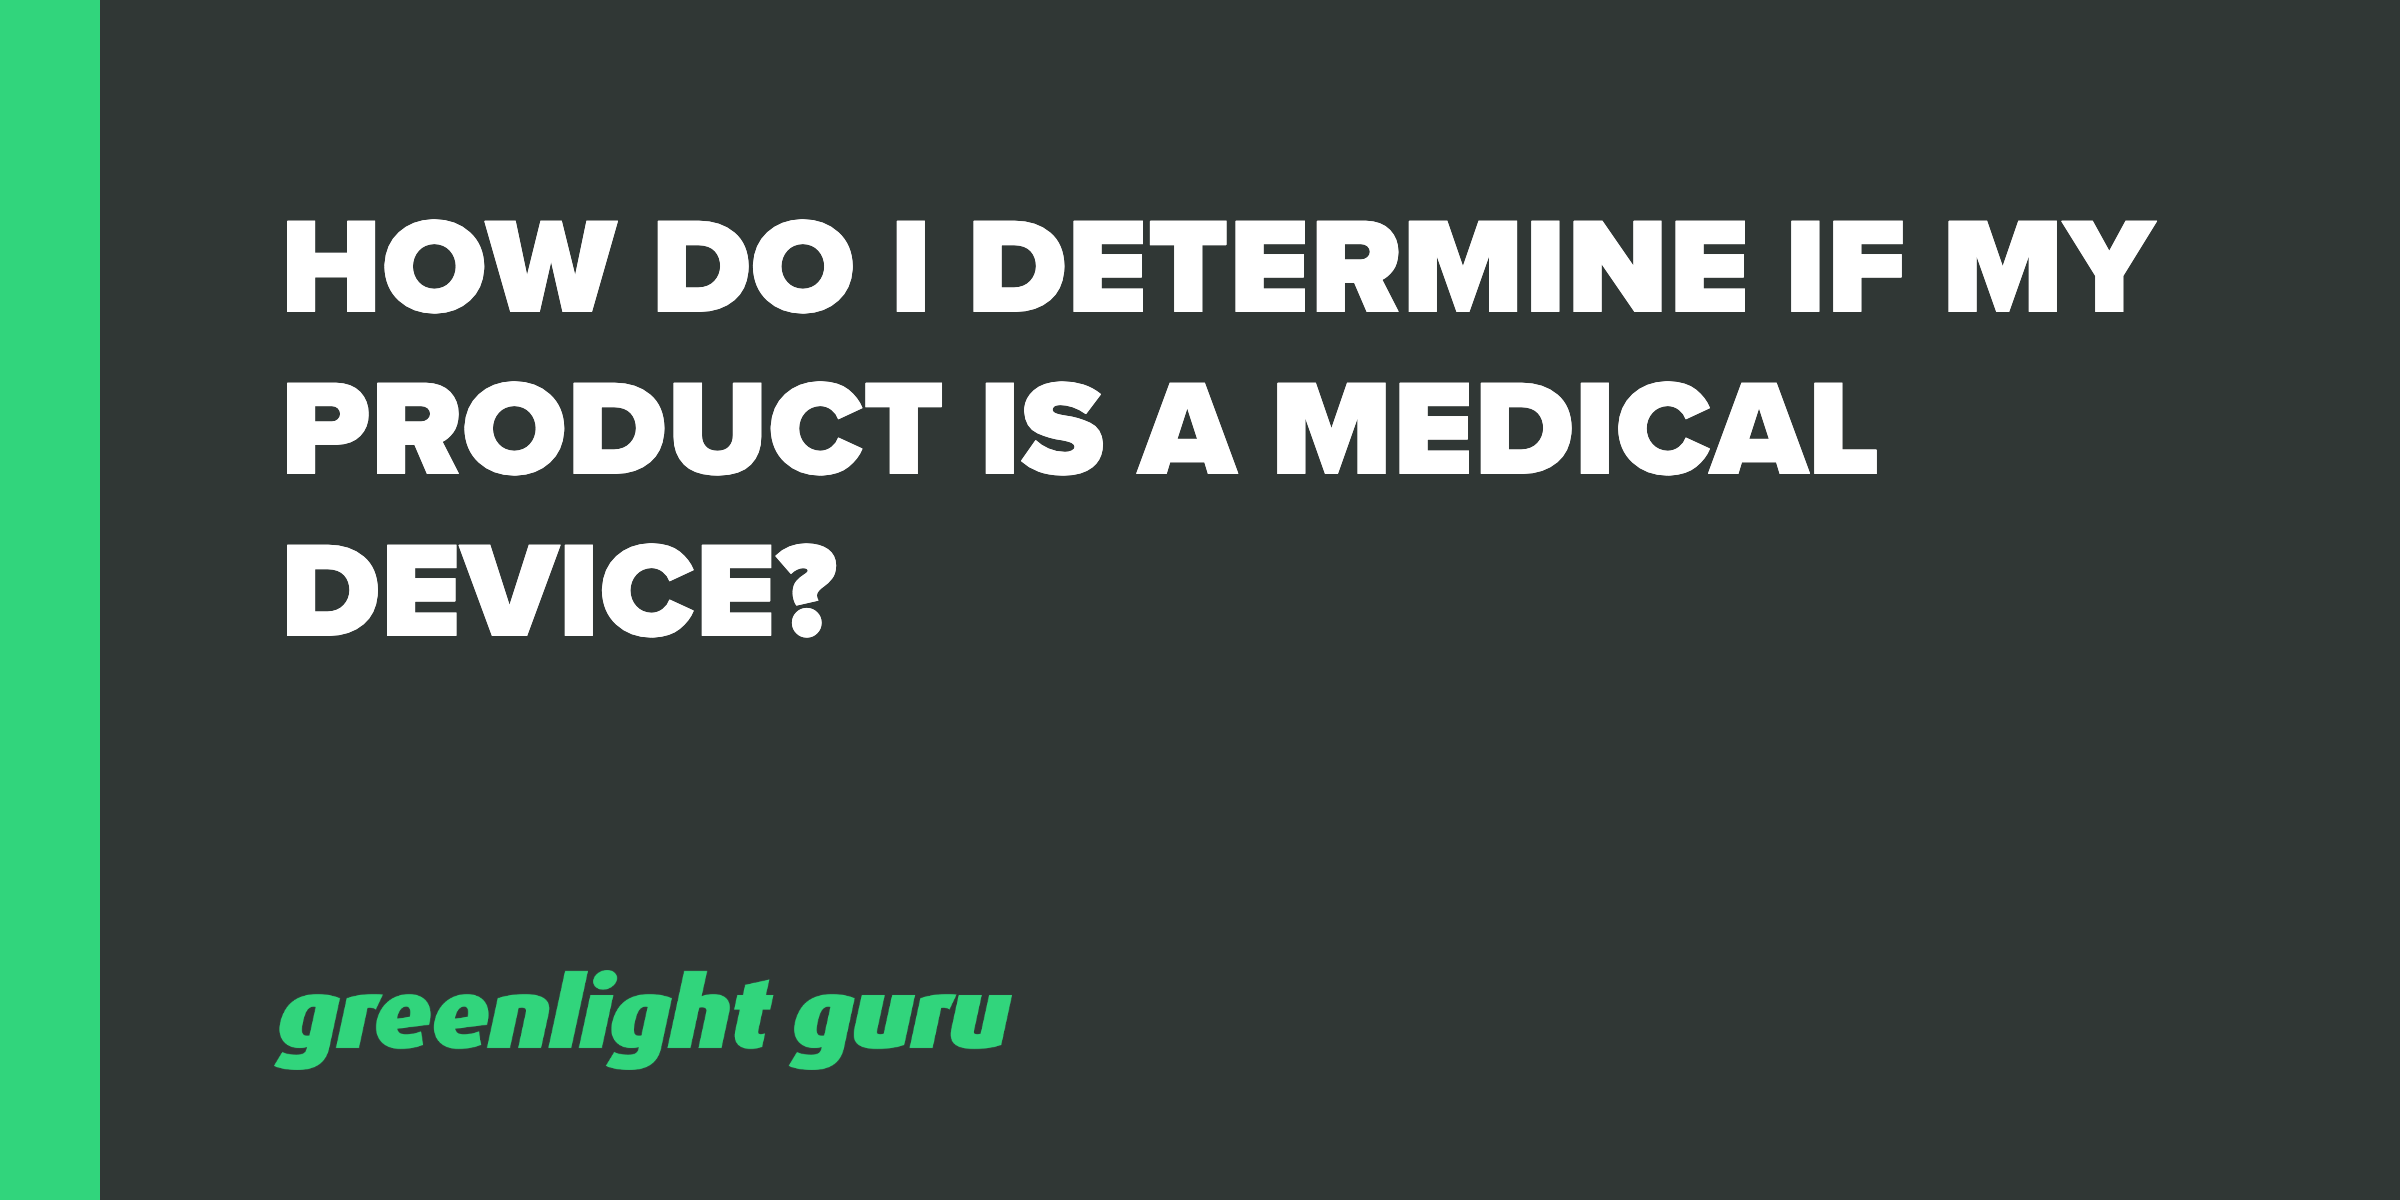 How do I Determine if my Product is a Medical Device